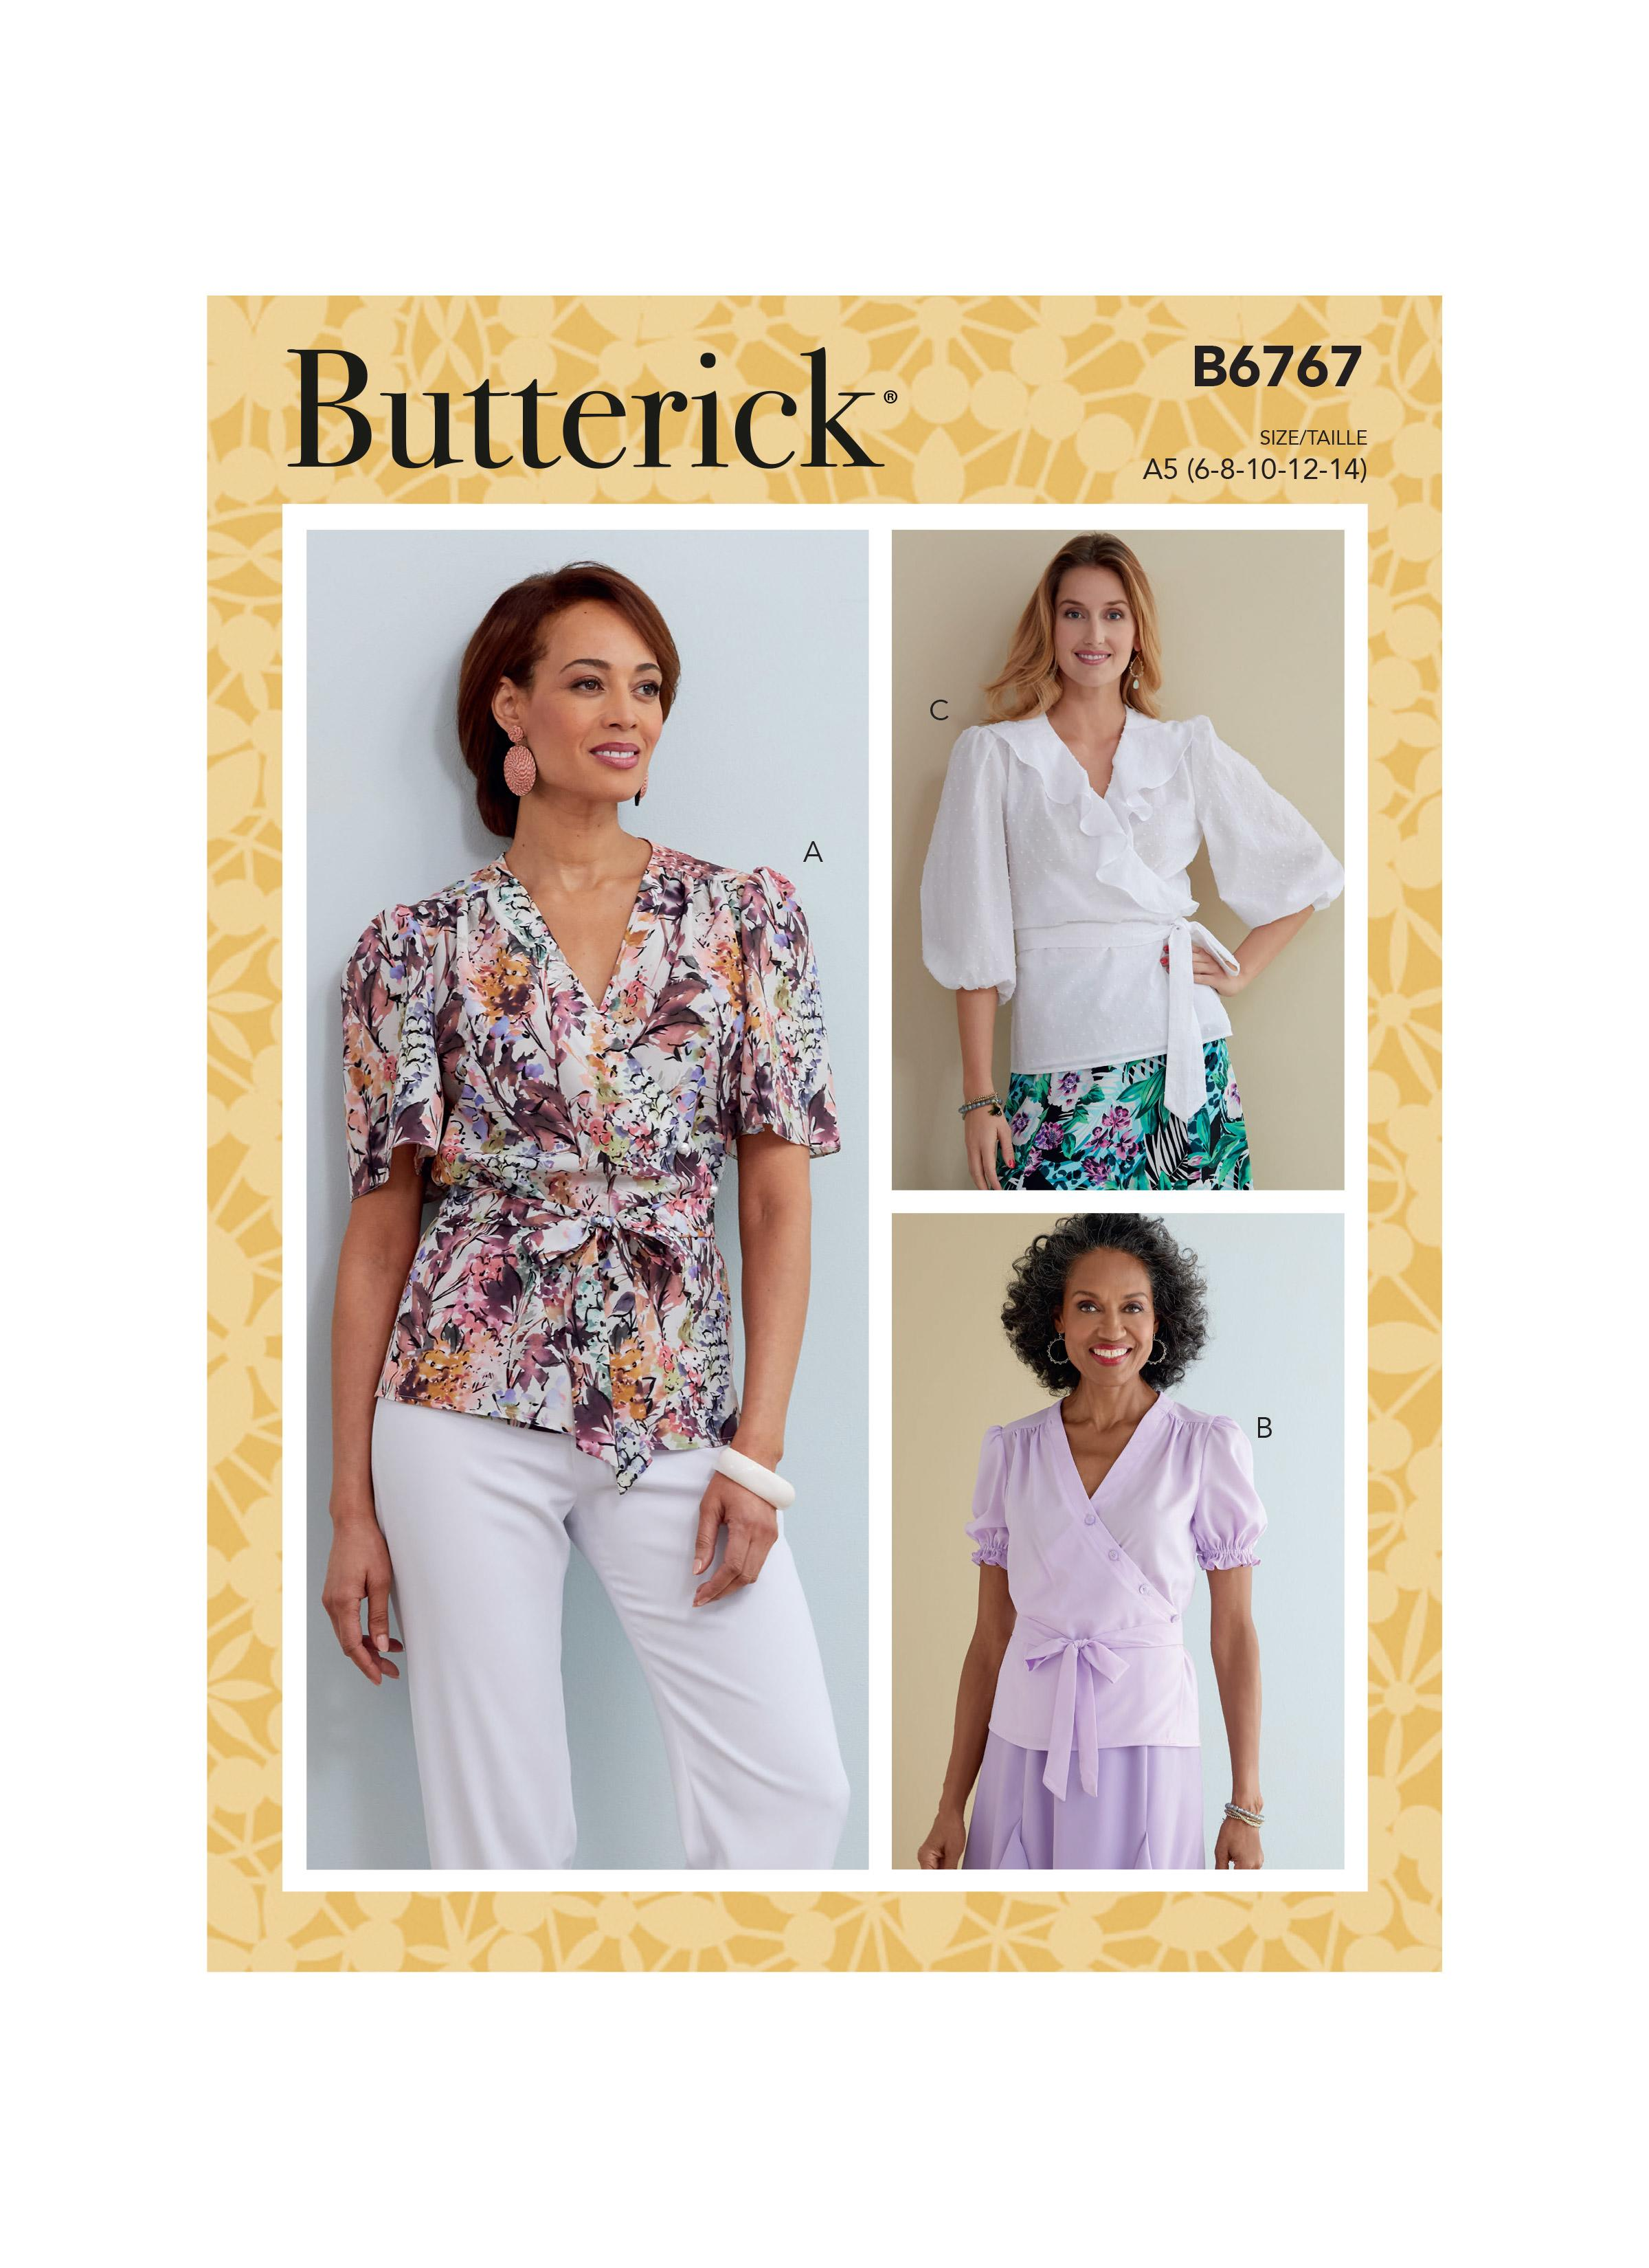 Butterick B6767 Misses' Tops